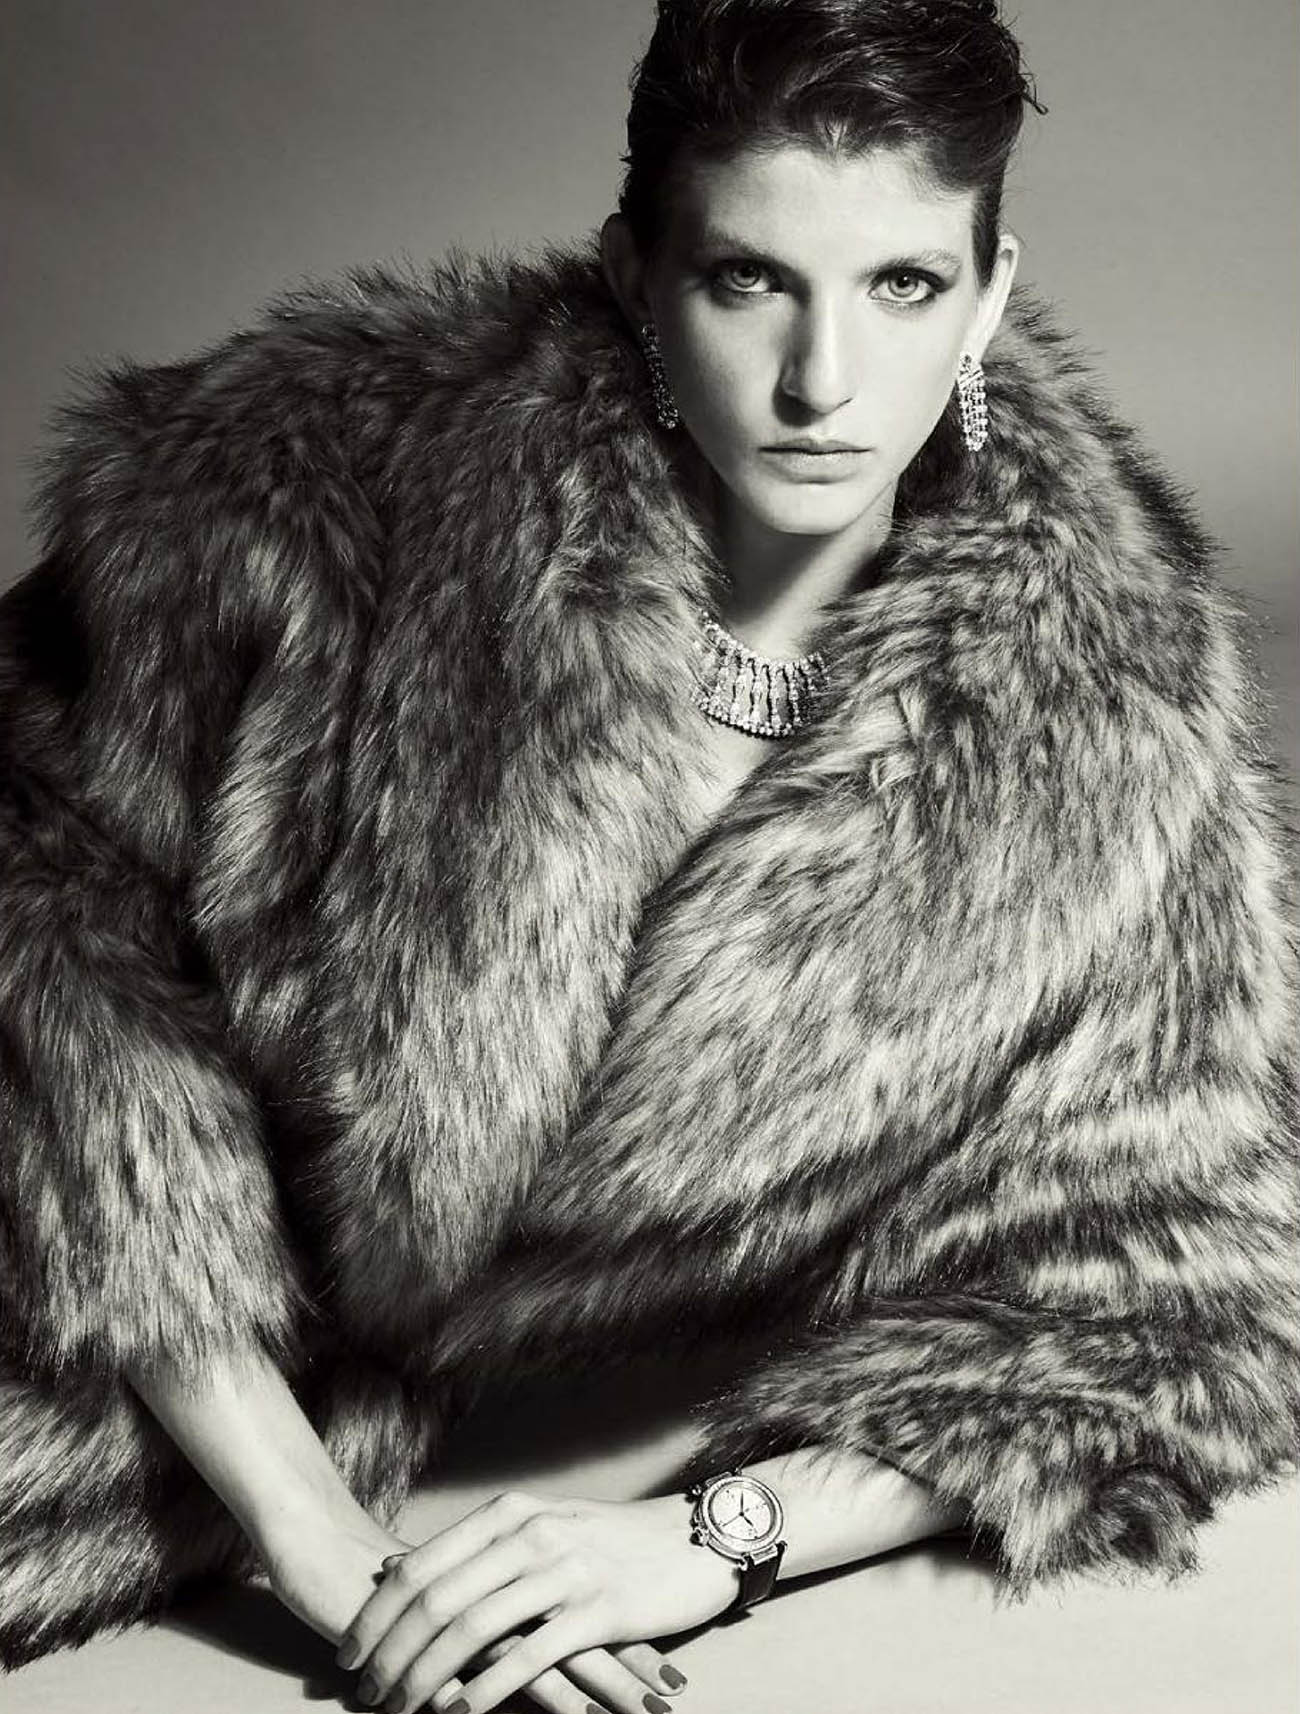 Caterina Ravaglia by Alberto Tandoi for L'Officiel Italia Issue 34